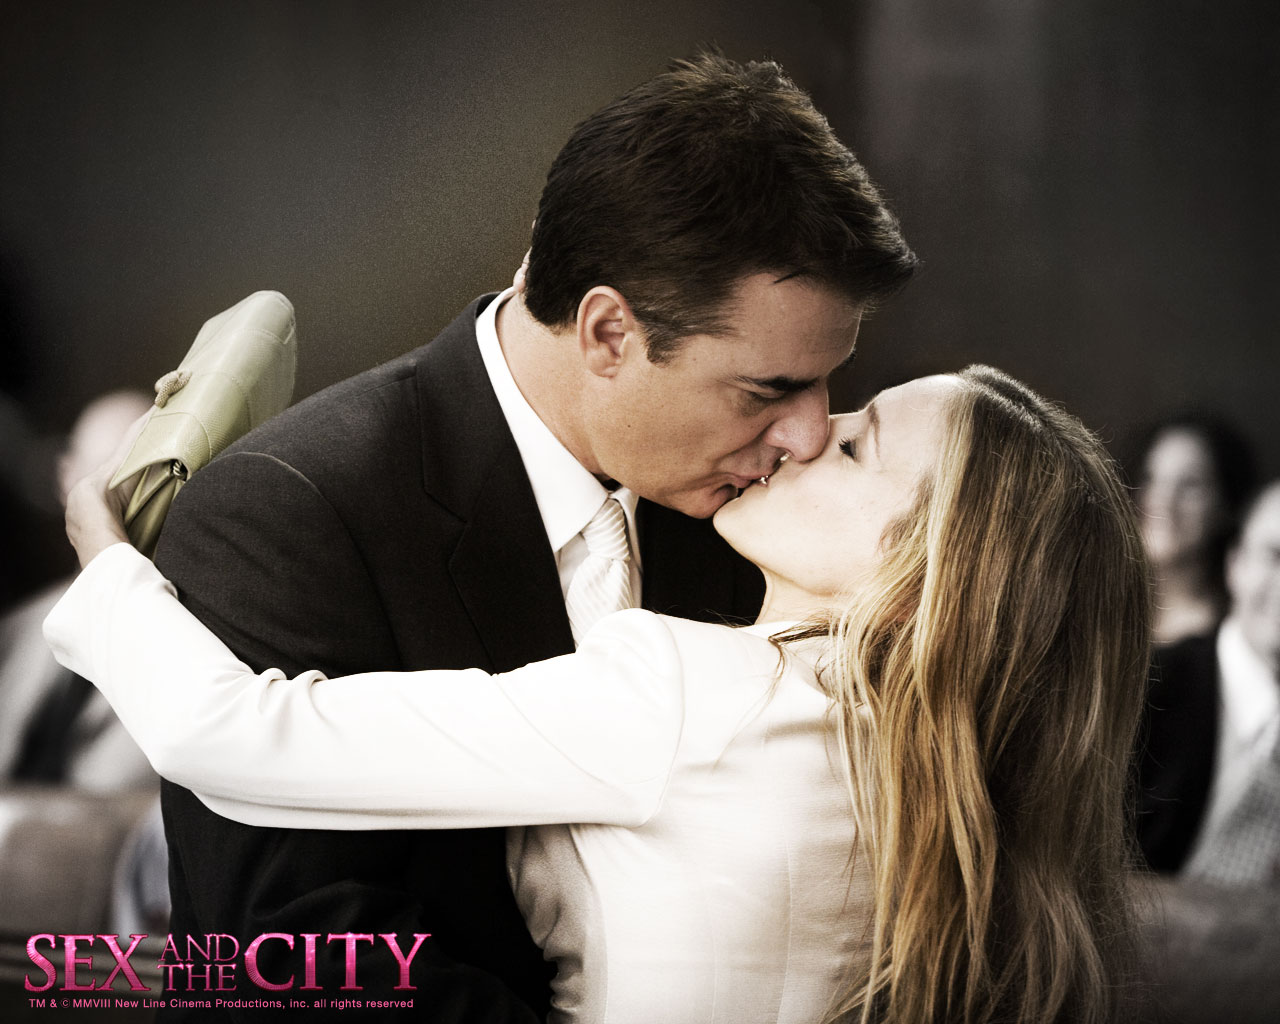 sex and the city movie sexy kiss